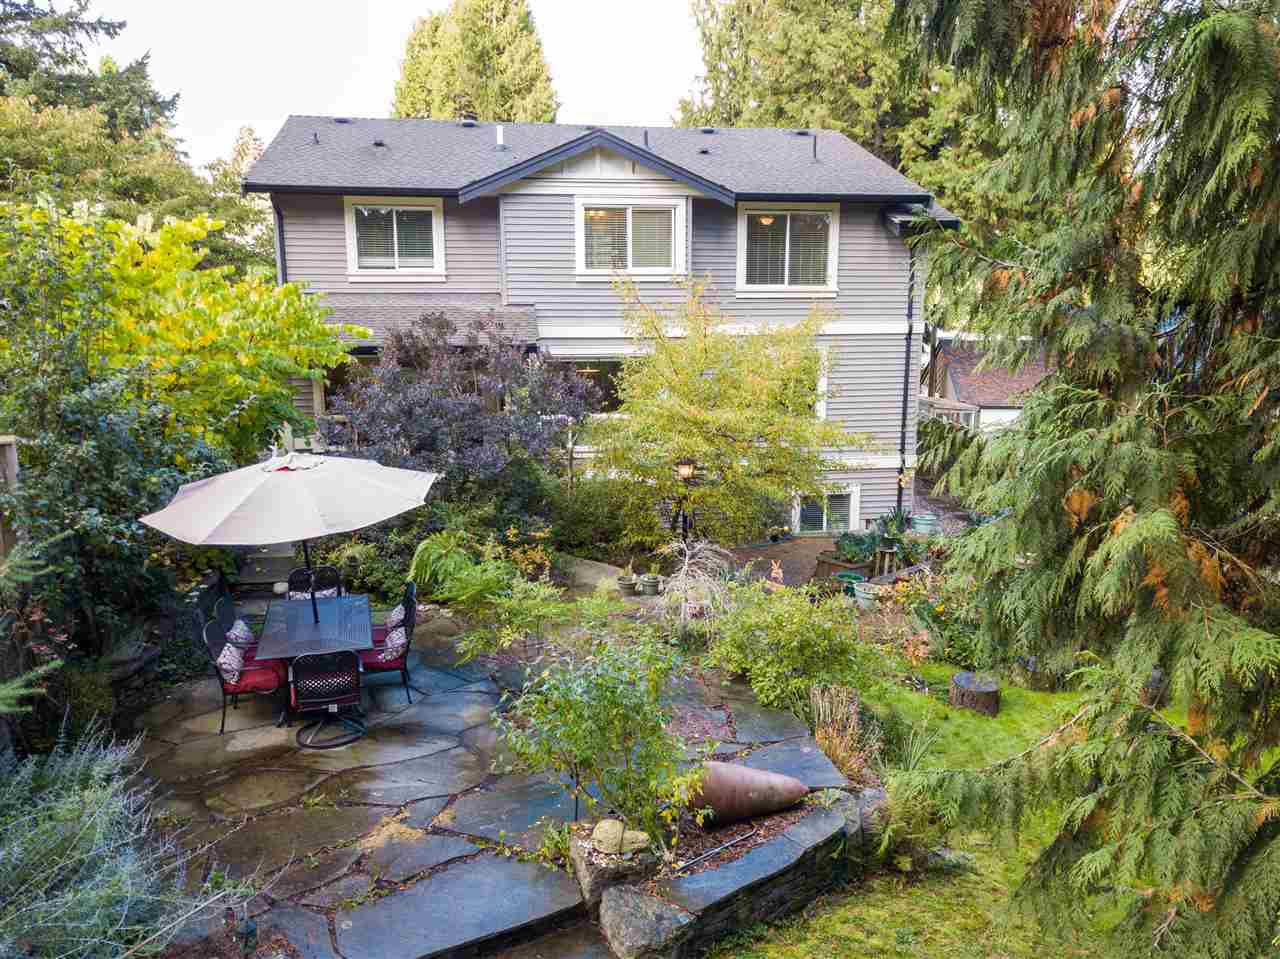 1323 E 18TH STREET - Westlynn House/Single Family for sale, 6 Bedrooms (R2511991) - #27